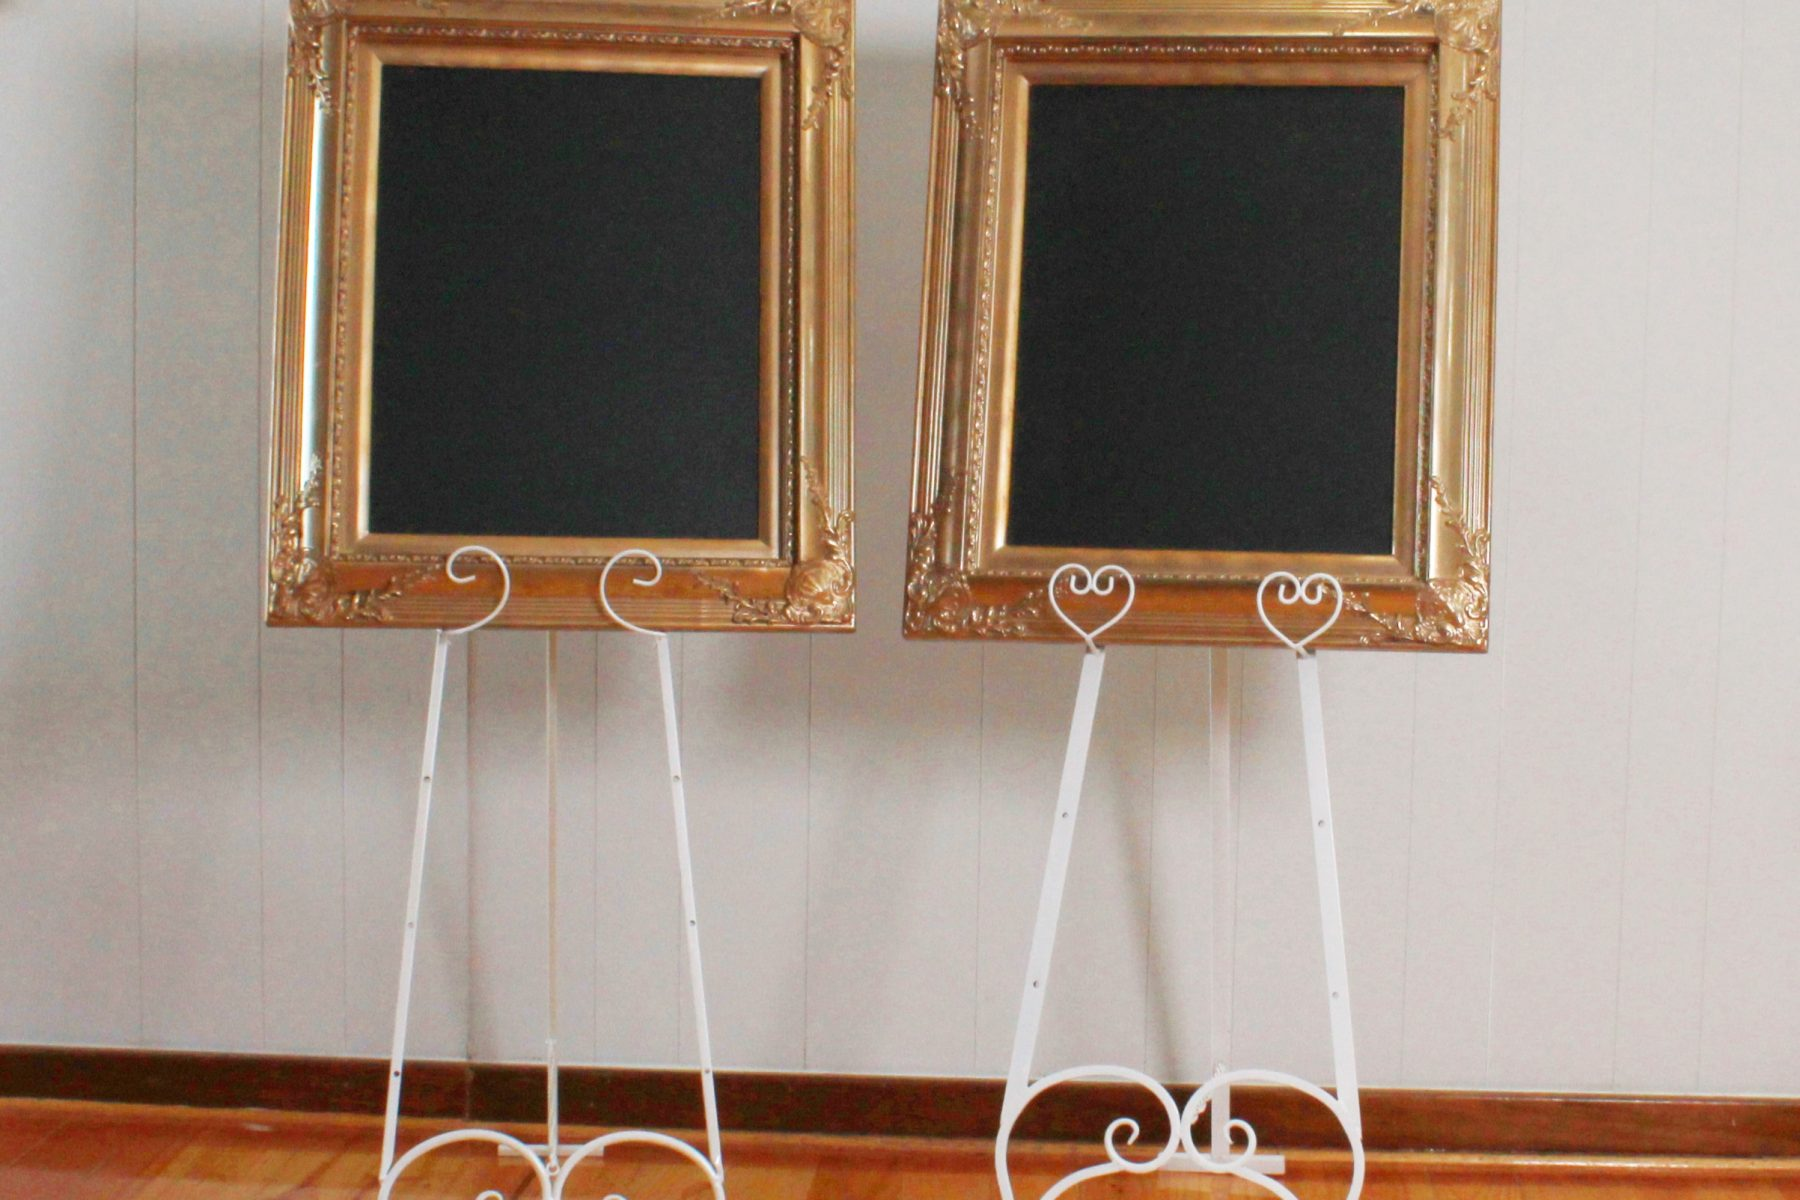 blackboards pair on easel